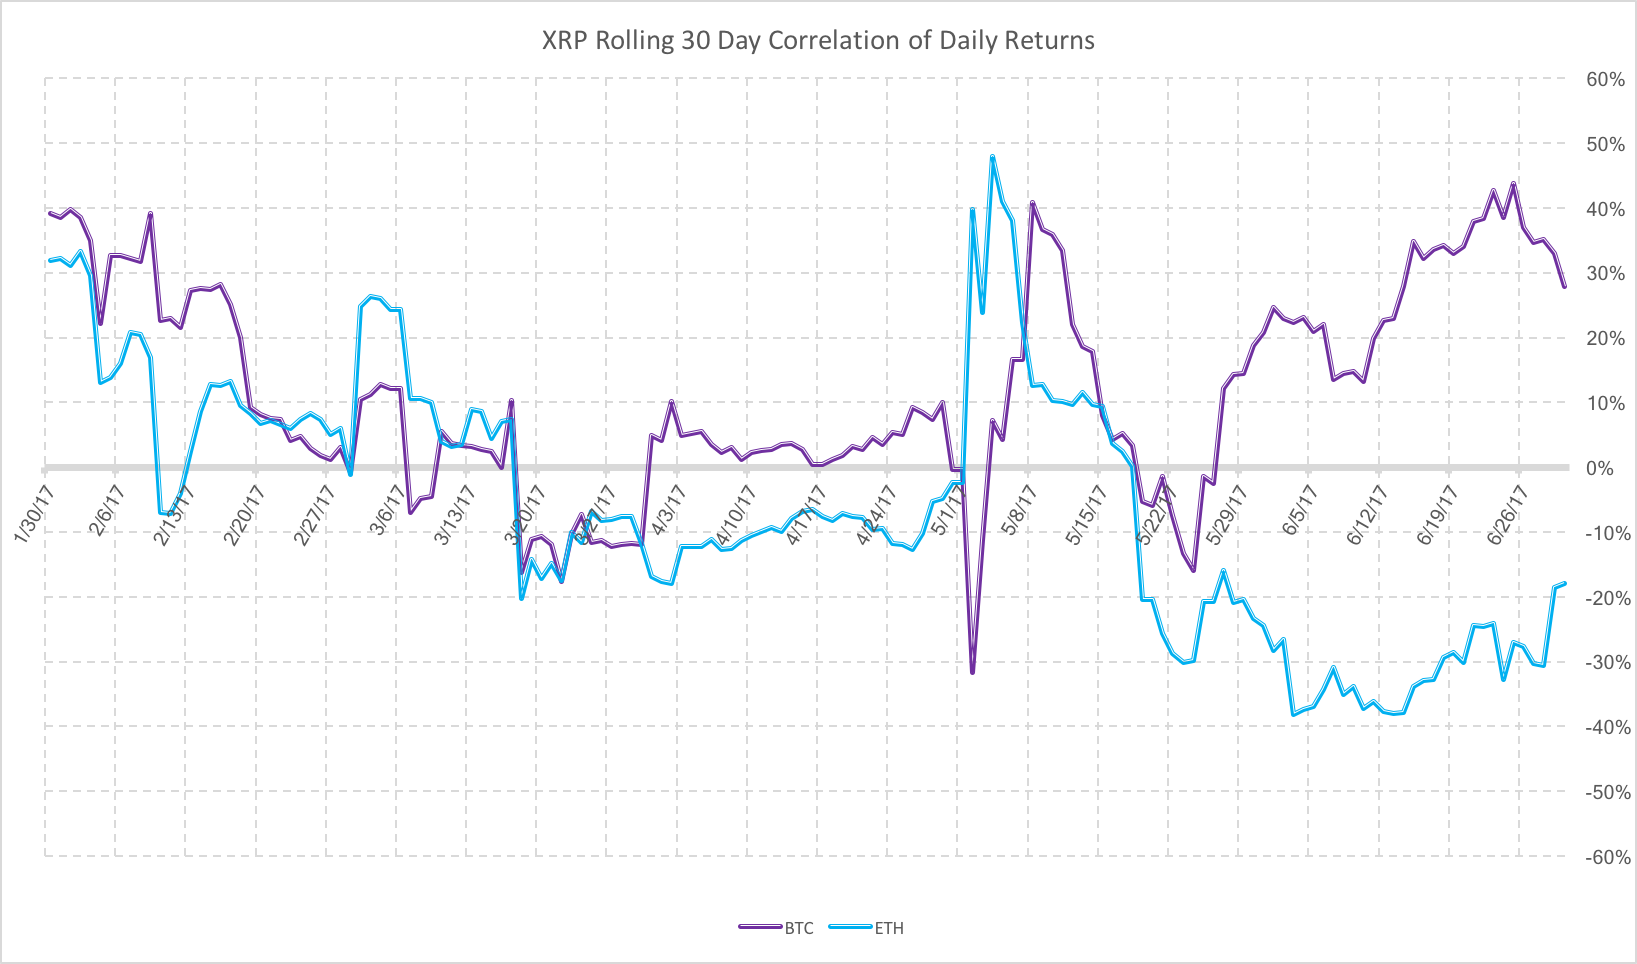 XRP Rolling 30 Day Correlation Of Daily Returns